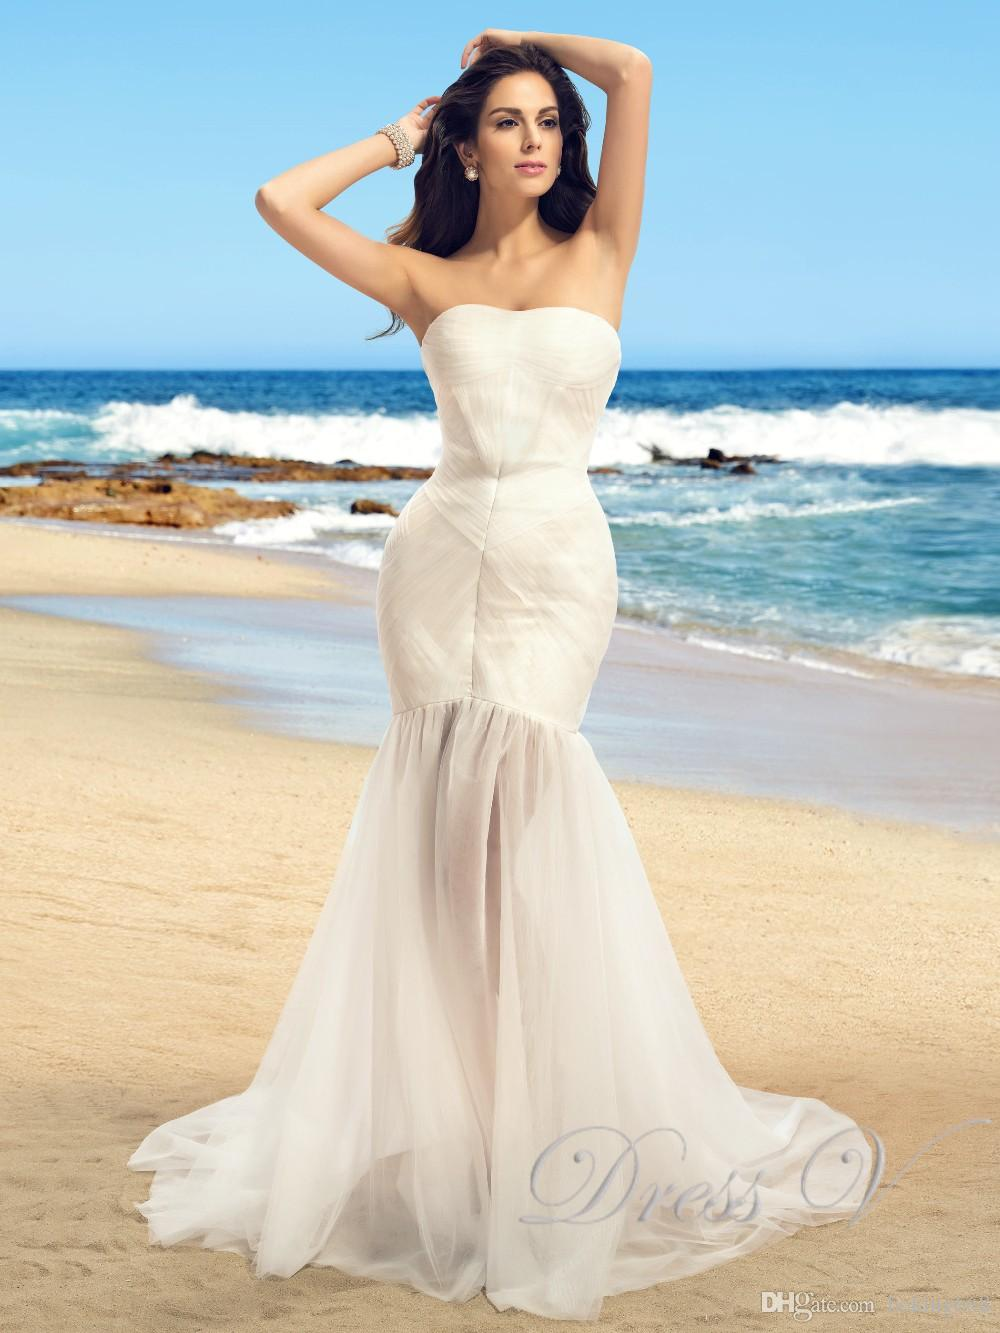 Discount Romantic Summer Beach Wedding Dresses 2017. Diy Long Sleeve Wedding Dress. Wedding Dresses Styles For Body Types. Embellished Mermaid Wedding Dresses. Empire Line Wedding Dresses Plus Size. Panina Wedding Gowns Uk. Vera Wang Wedding Dresses Malaysia. Sleeved Wedding Dresses Uk. Red Wedding Dresses For The Beach